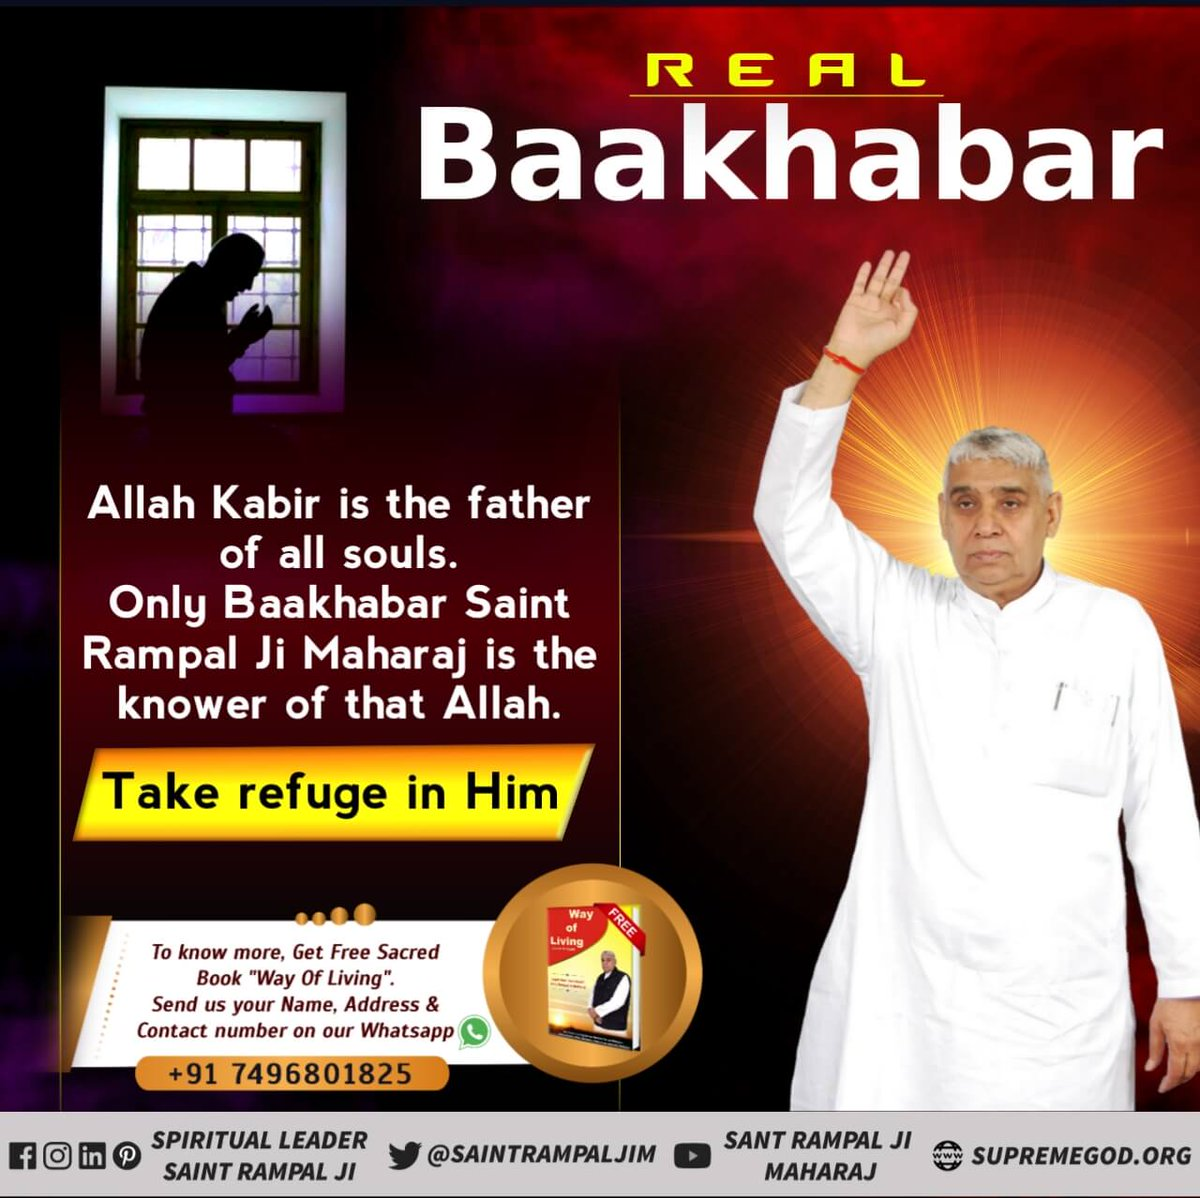 #GodMorningMonday  Allah Kabir is the father of all souls. Only Baakhabar Saint Rampal ji maharaj ji is the knower of that Allah.  To Know More Watch Ishwar tv 8:30pm Daily.